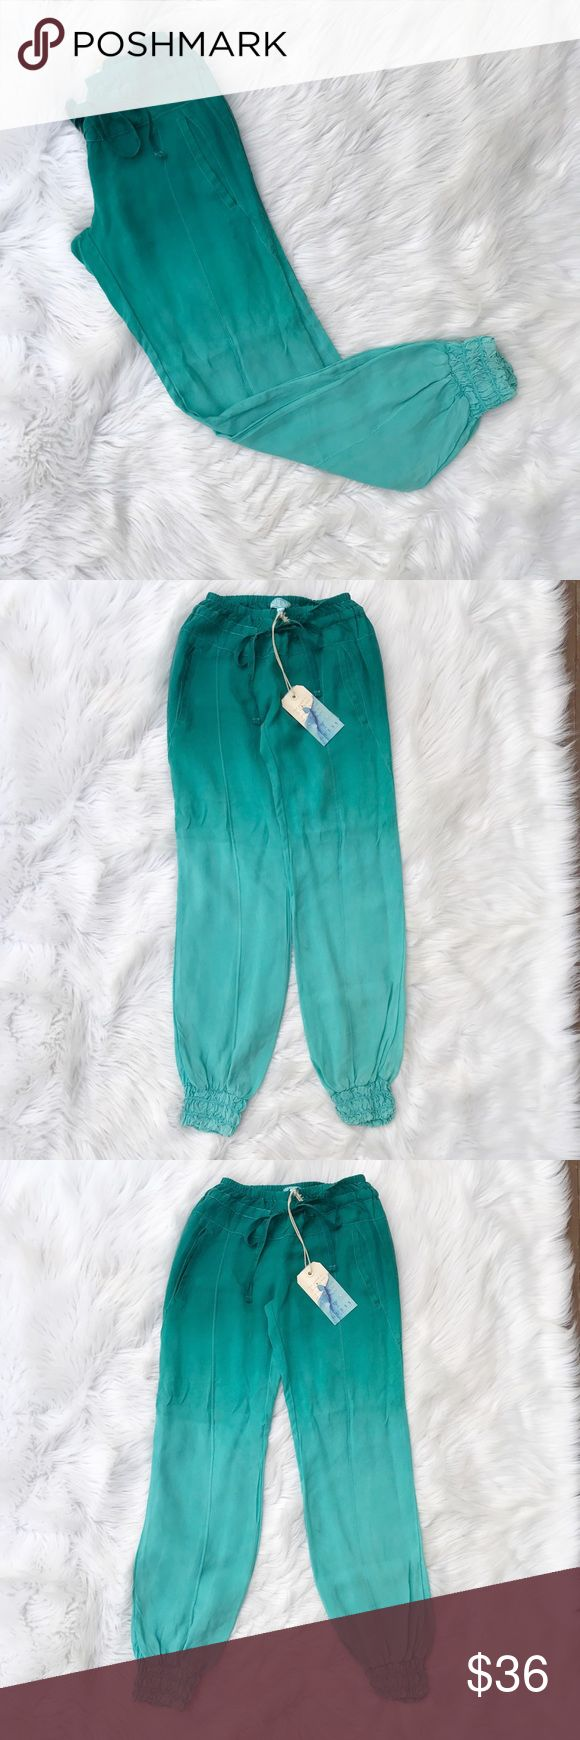 Guess Ombre Harlem Pants So cute and perfect for summer! Light weight and comfy material. NWT. Measurements to come. Guess Pants Track Pants & Joggers